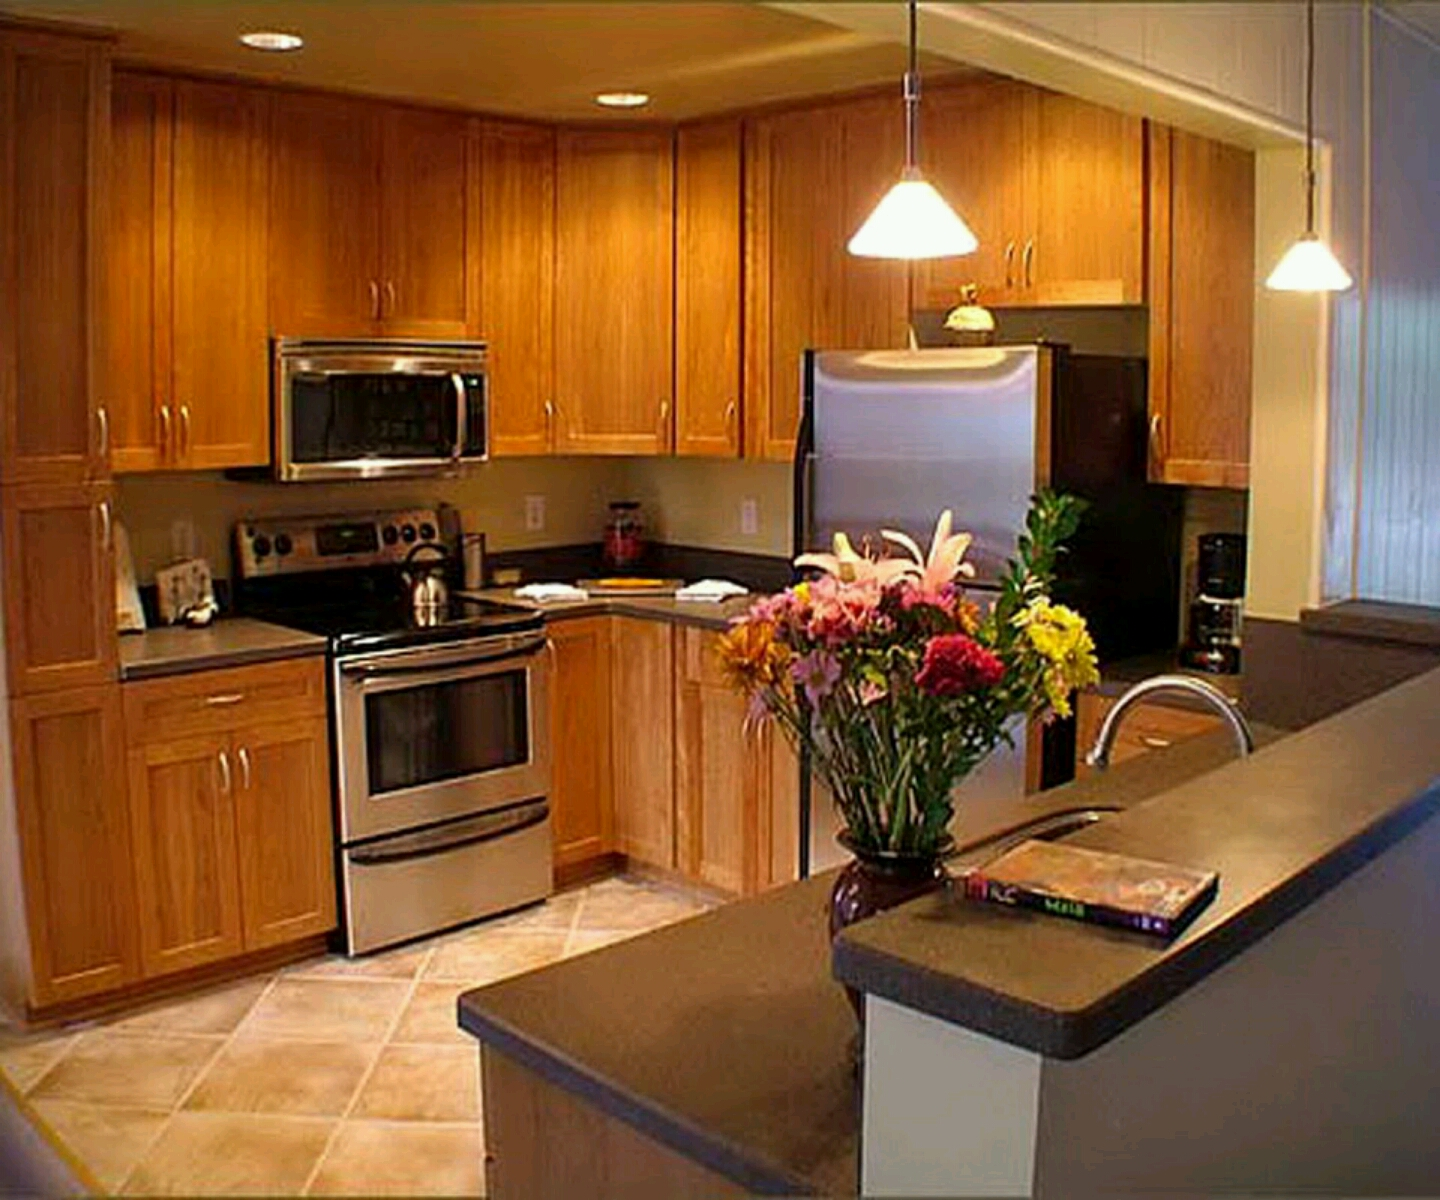 Contemporary wooden kitchen cabinets bill house plans Kitchen cabinet design modern